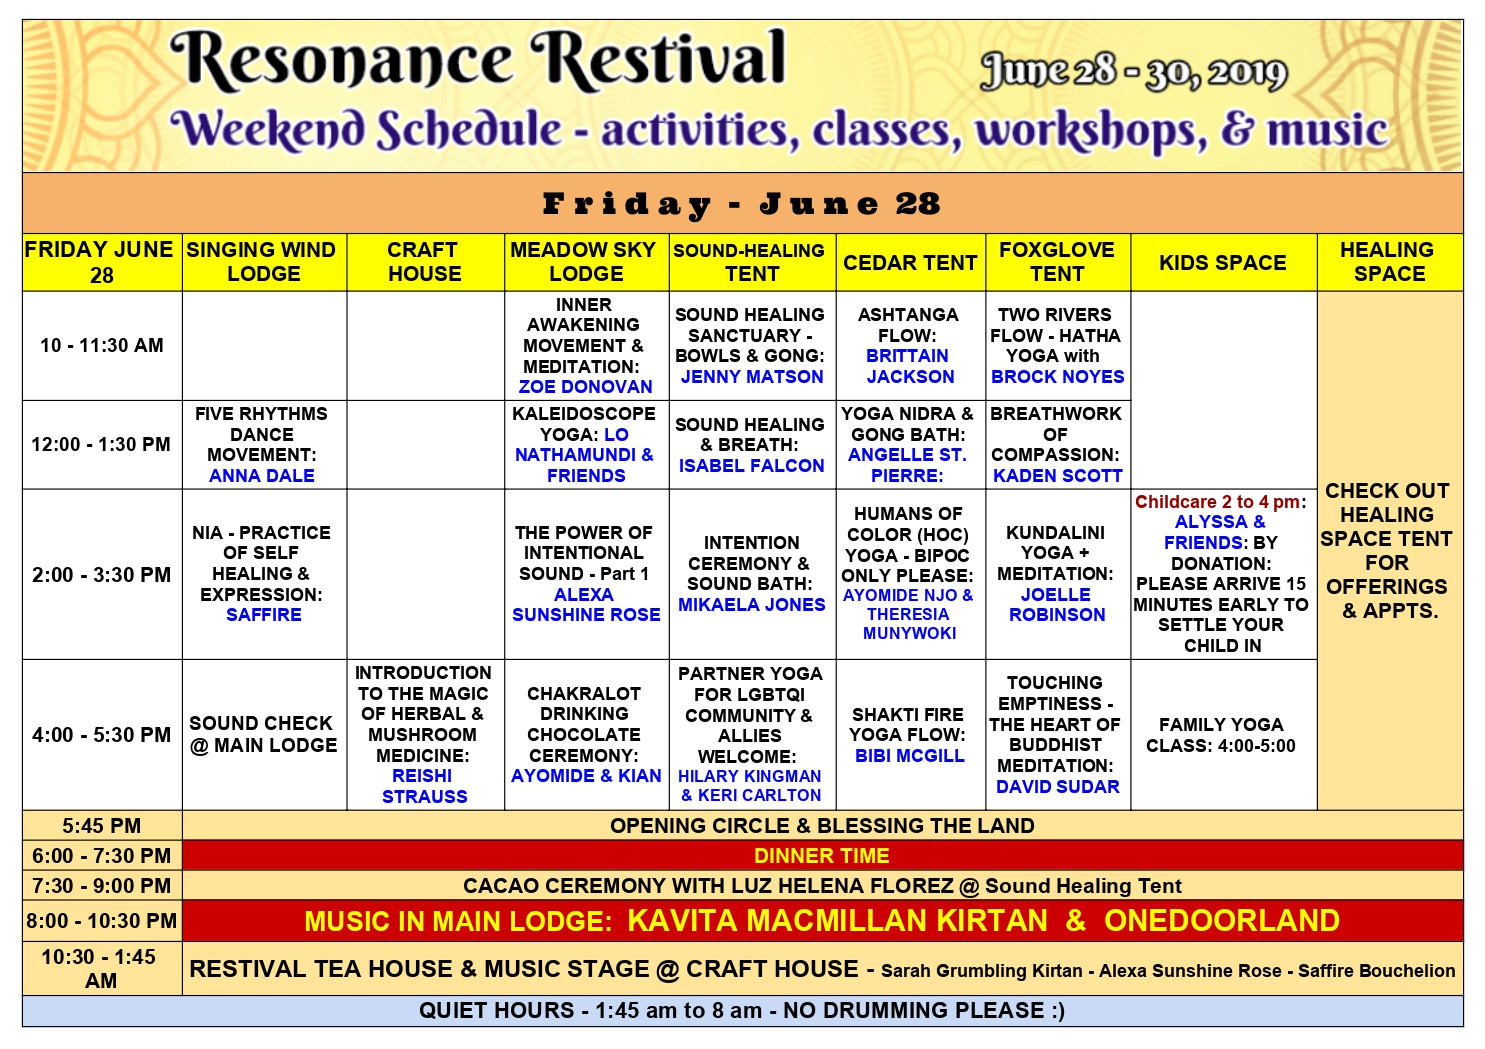 RESTIVAL 2019 SCHEDULE - FRIDAY.jpg